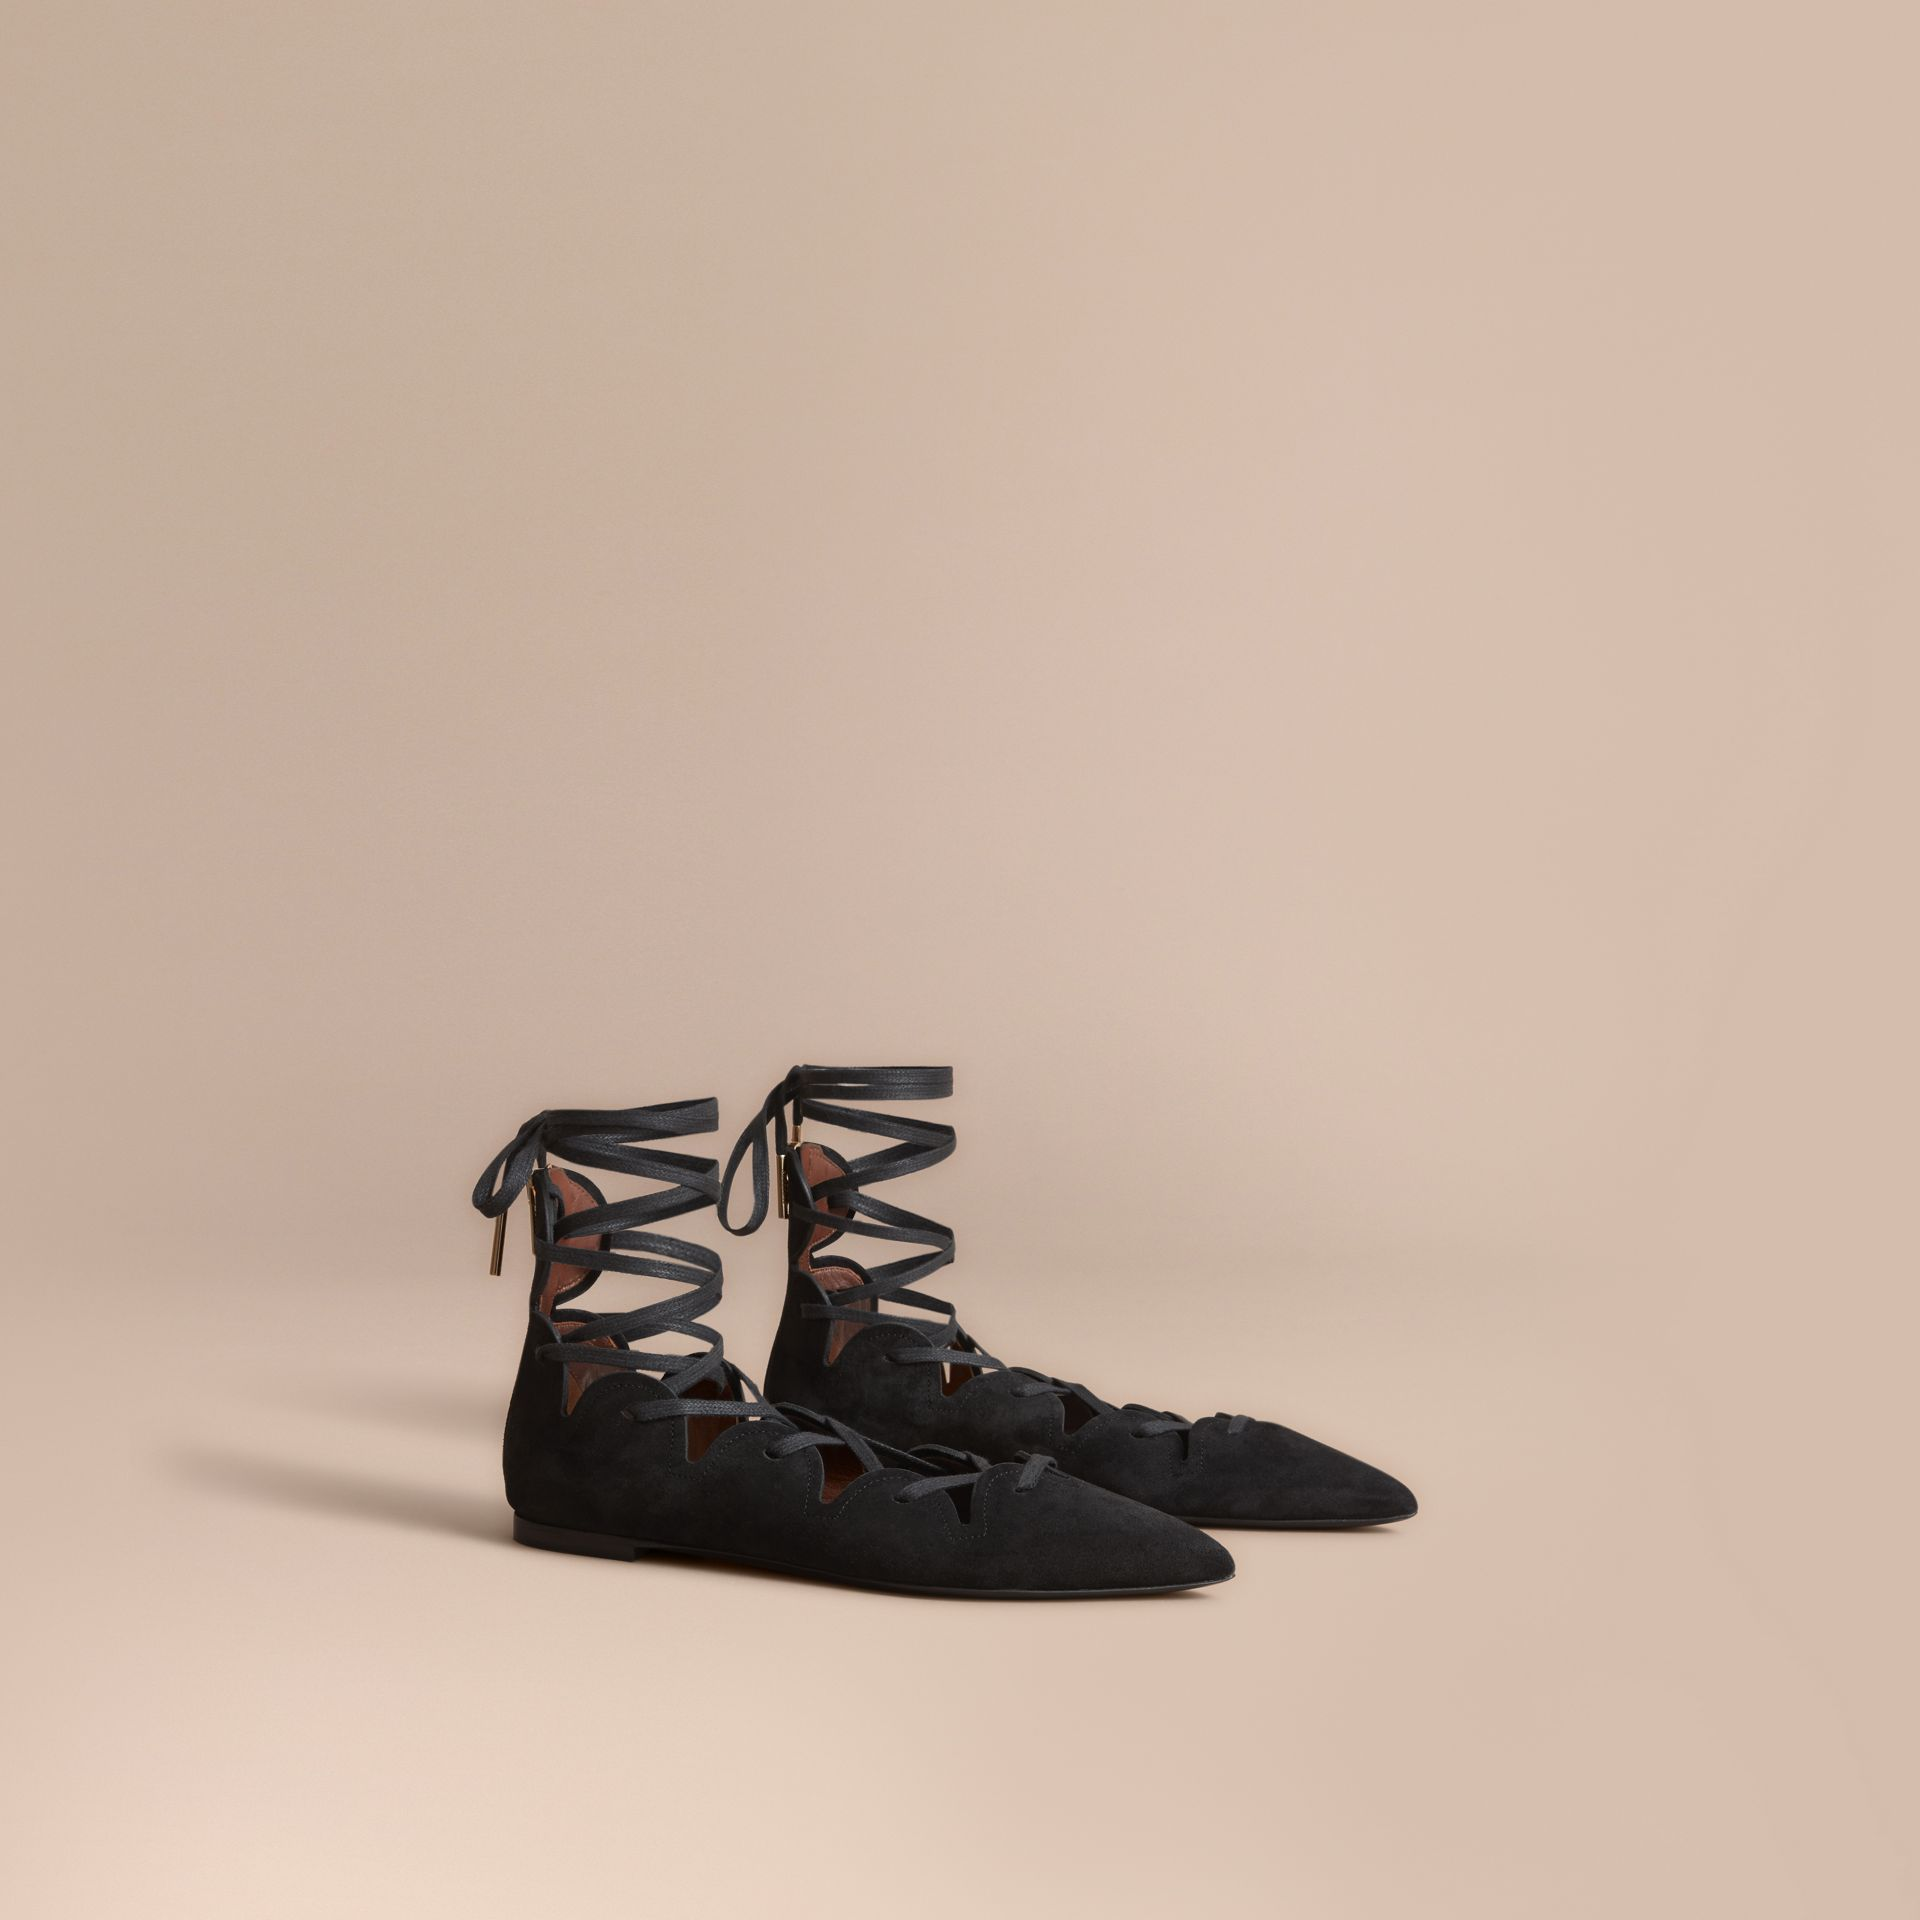 Scalloped Suede Lace-up Ballerinas in Black - Women | Burberry - gallery image 1